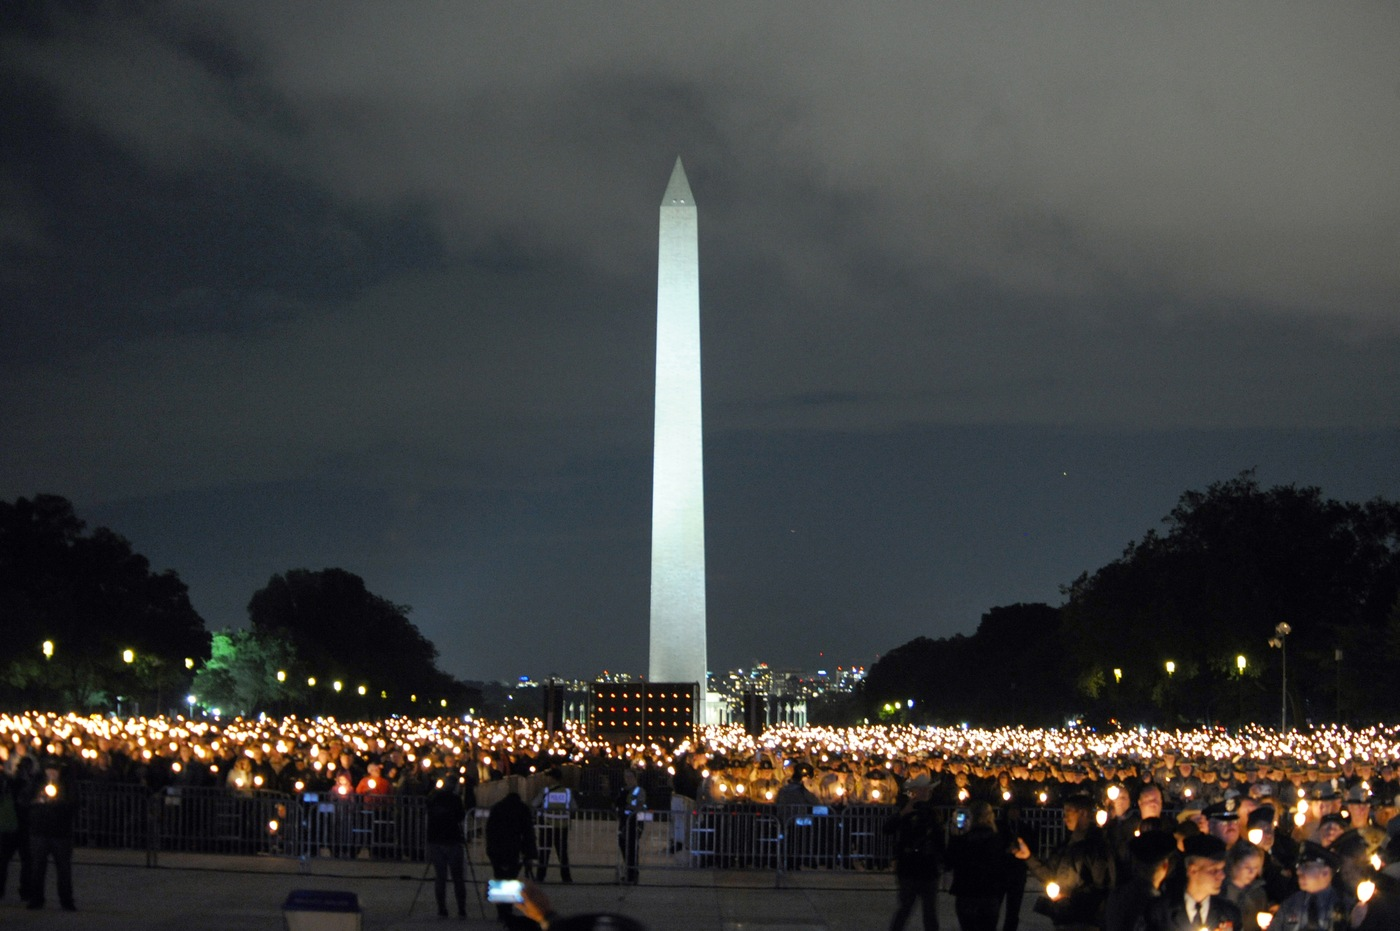 The Washington Monument serves as a backdrop for an estimated 30,000 people who attended a May 13, 2019 candlelight vigil honoring fallen officers on the National Mall in Washington, D.C., during National Police Week.